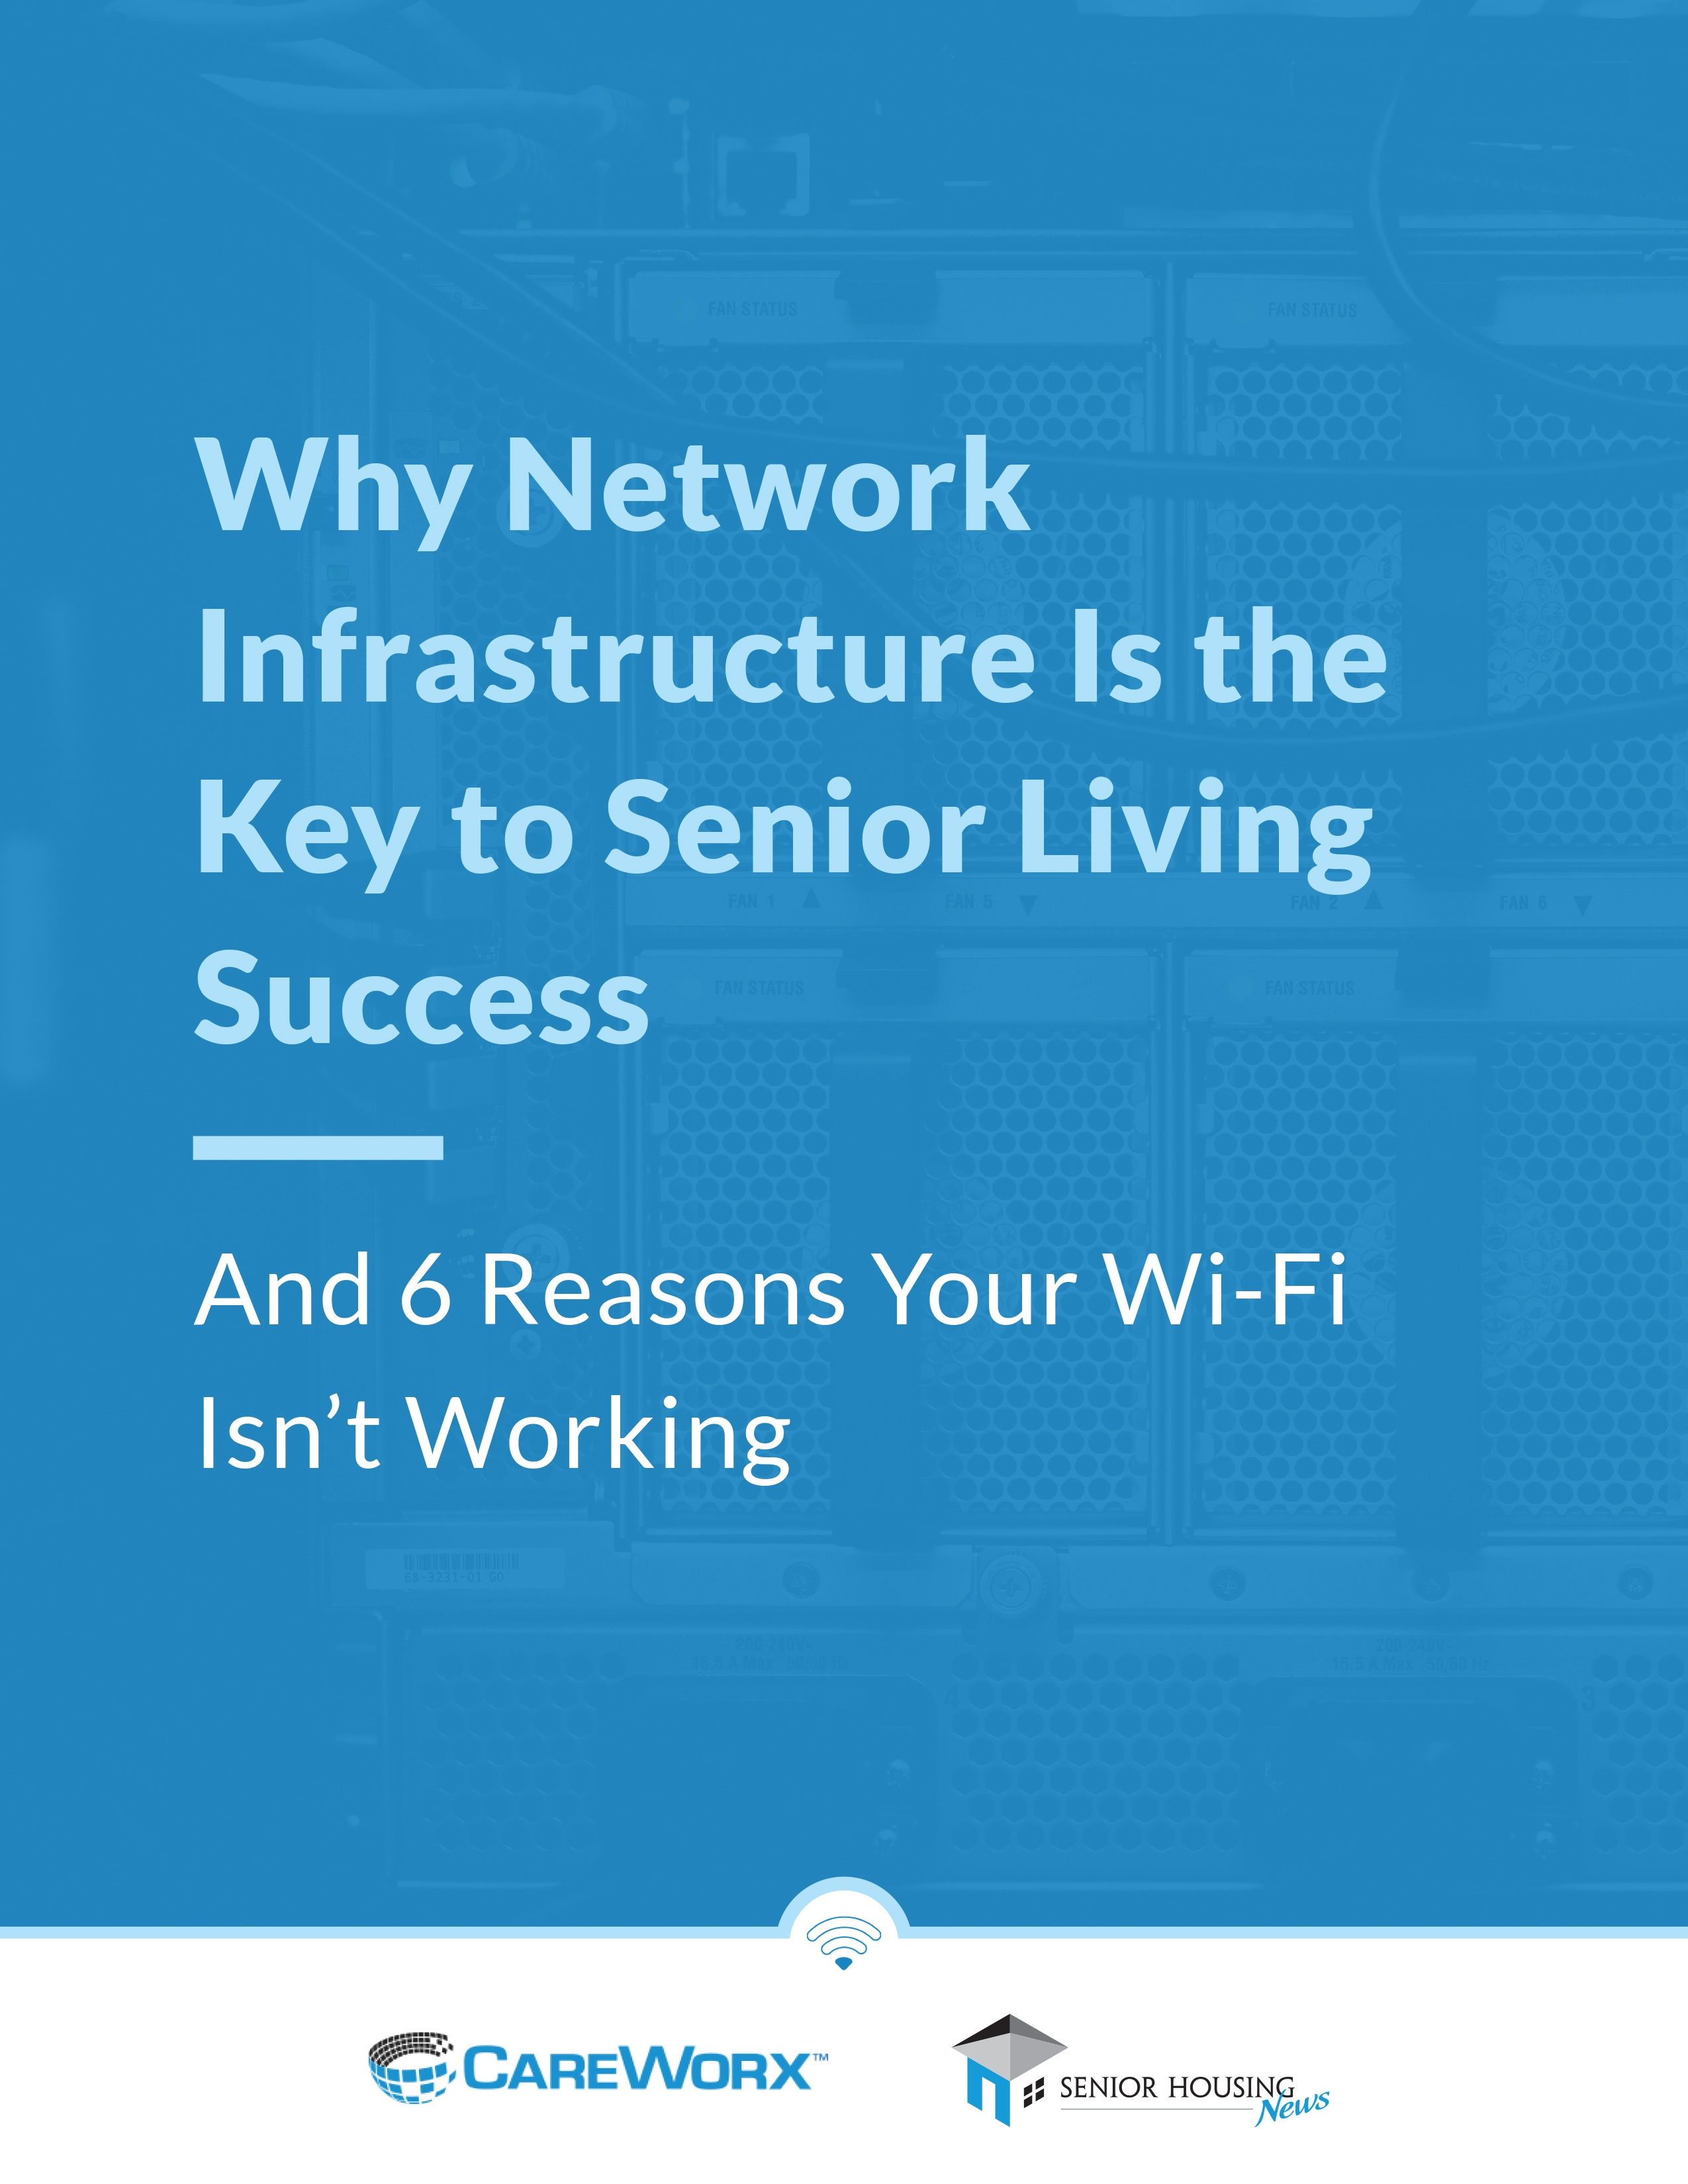 Why Network Infrastructure is the Key to Senior Living Success